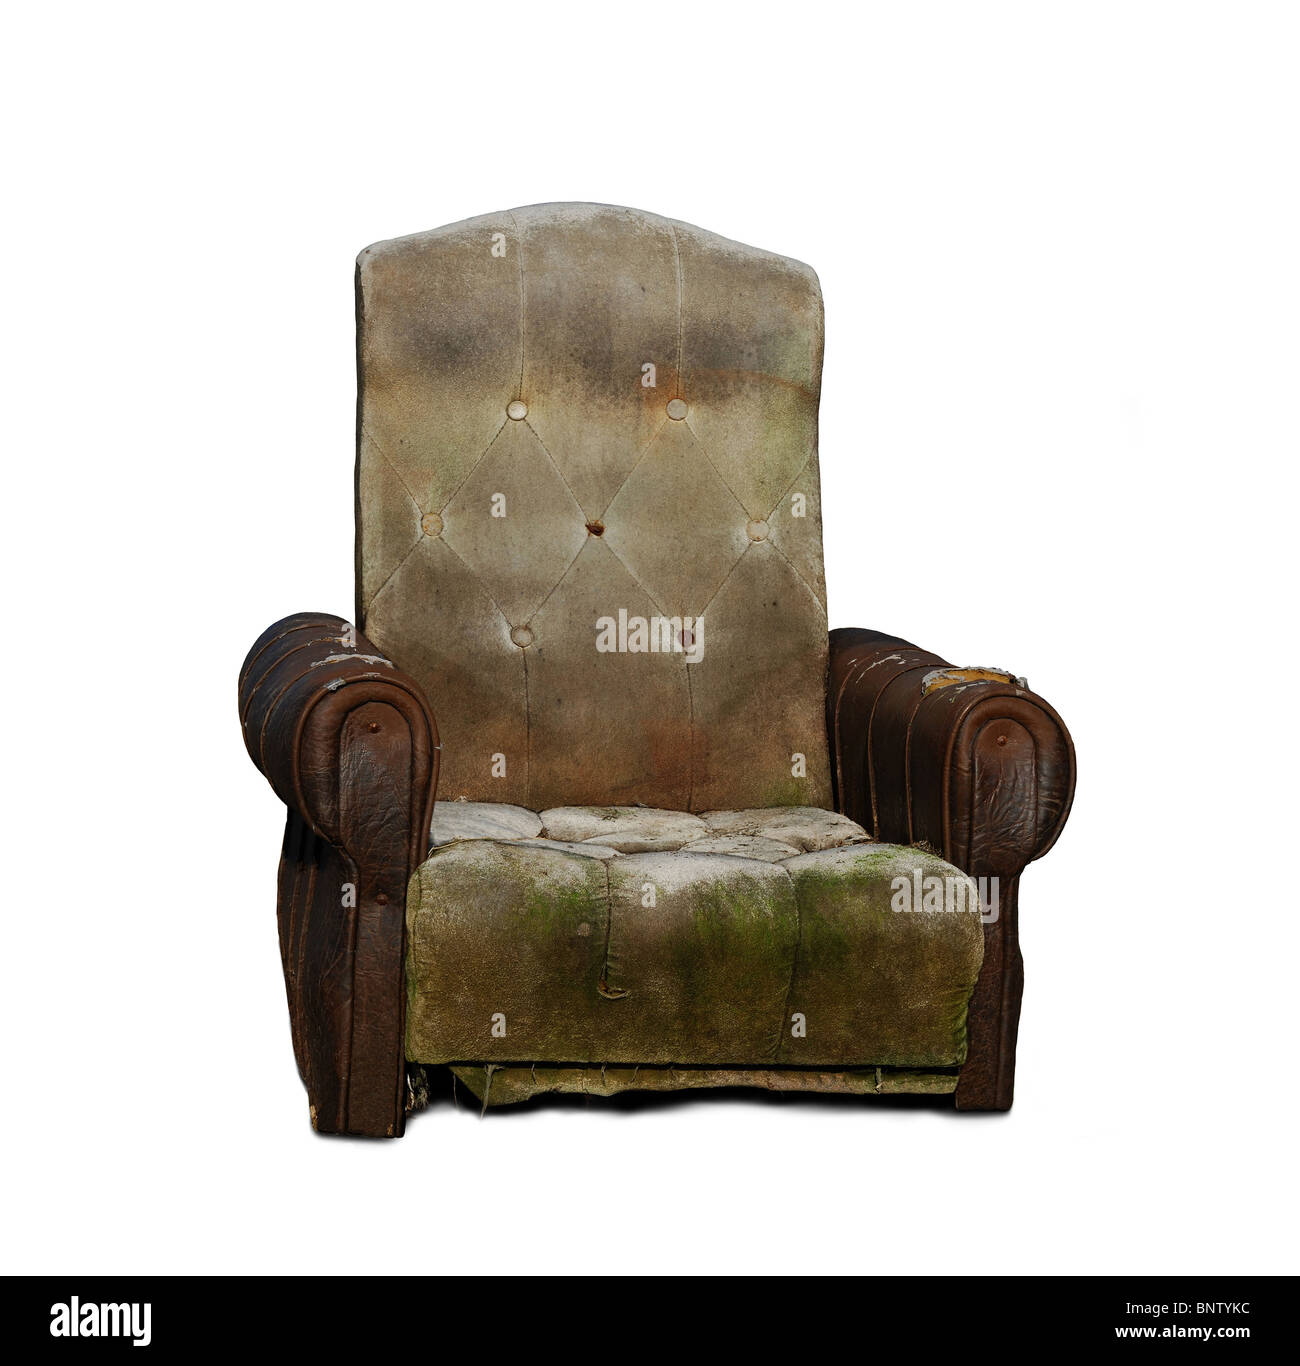 Old trash armchair - Stock Image